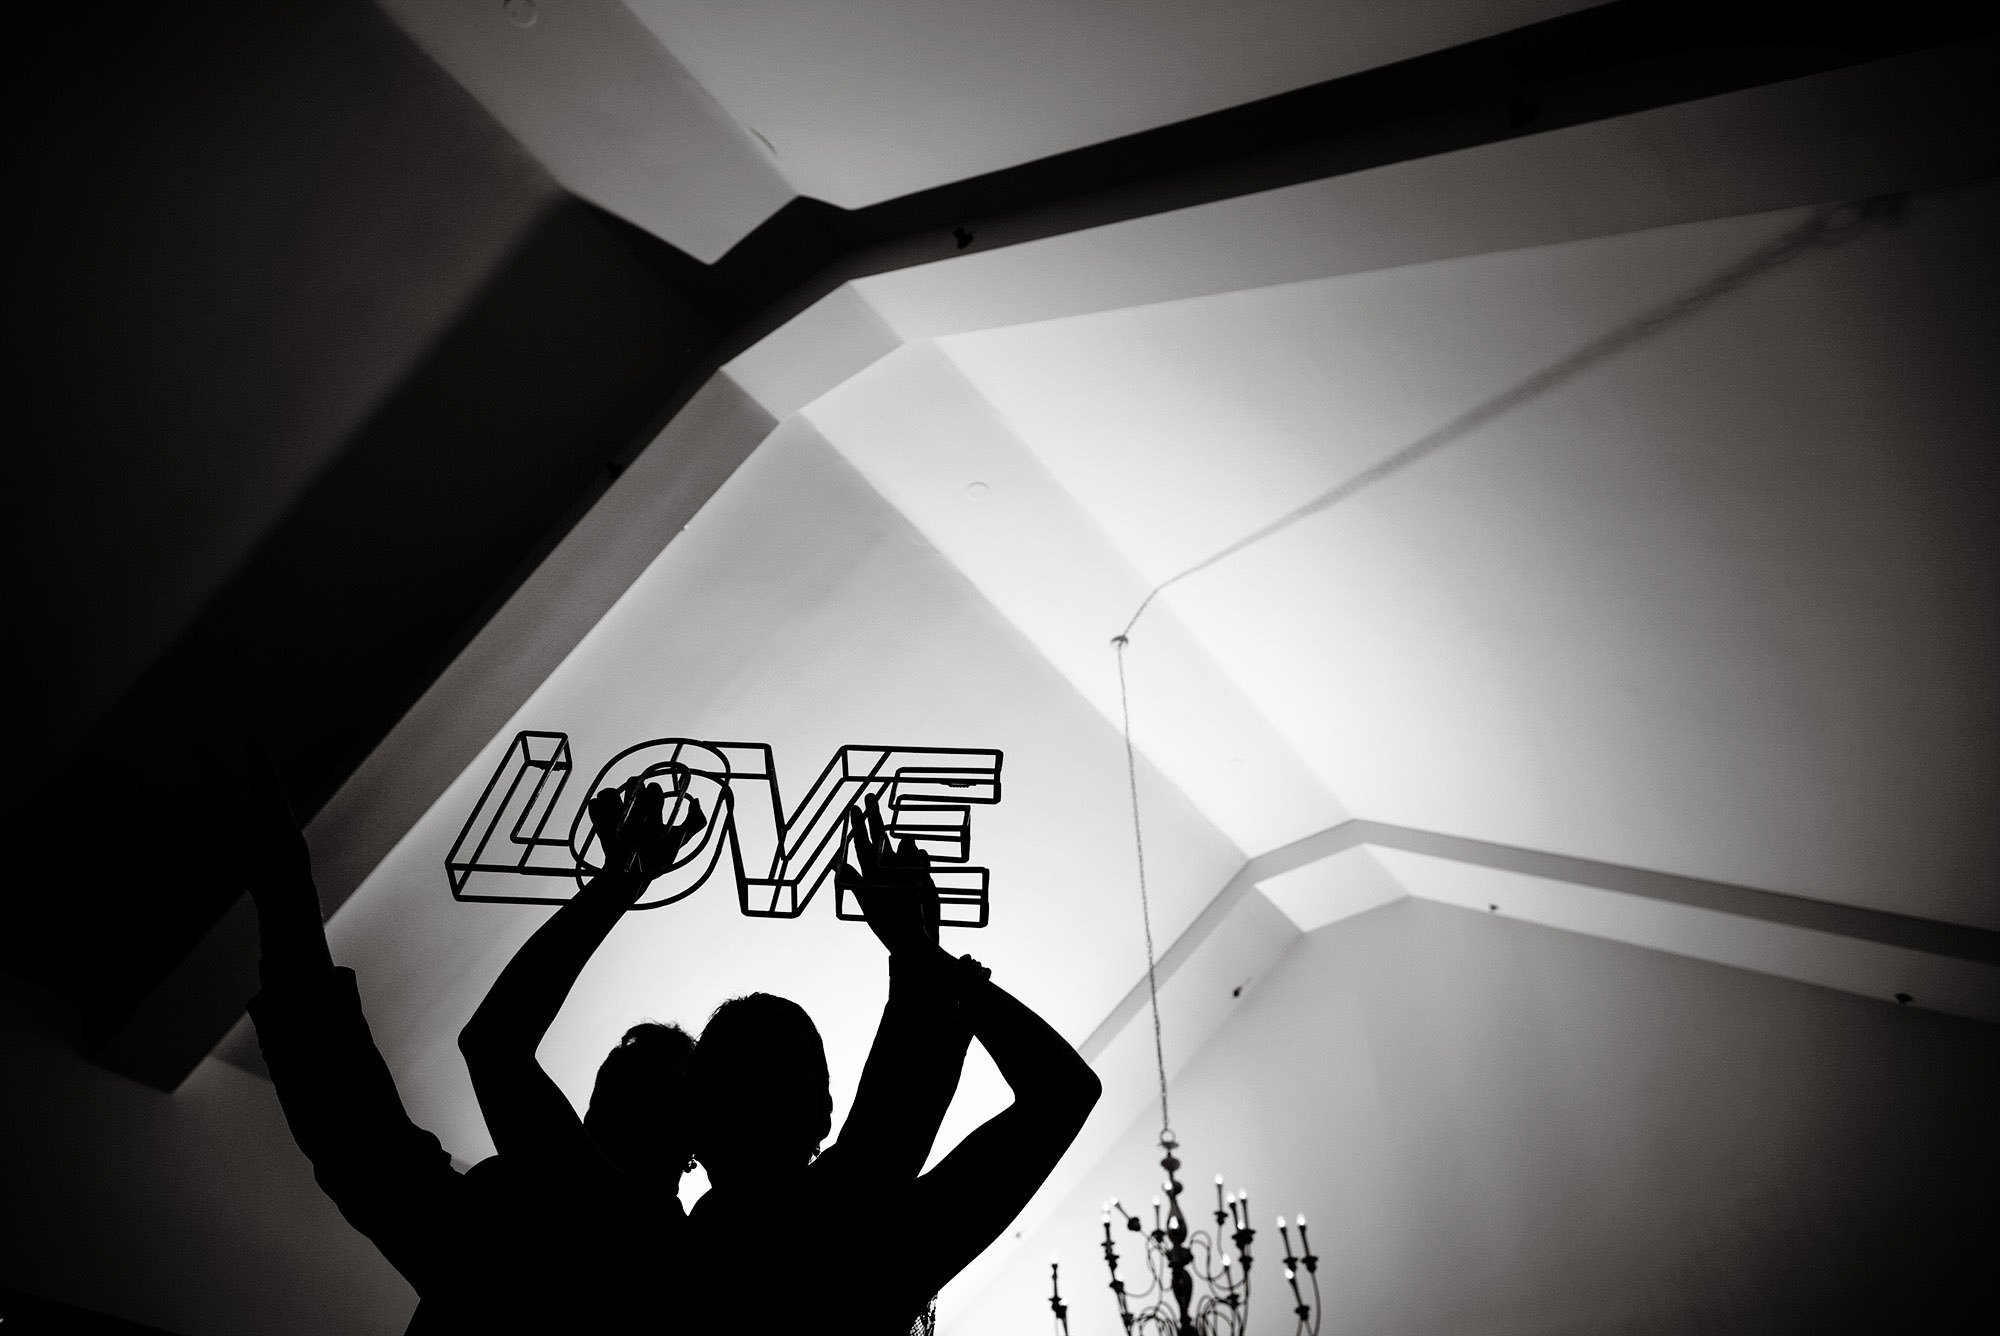 A LOVE sign is held high during the White Cliffs Country Club wedding reception.